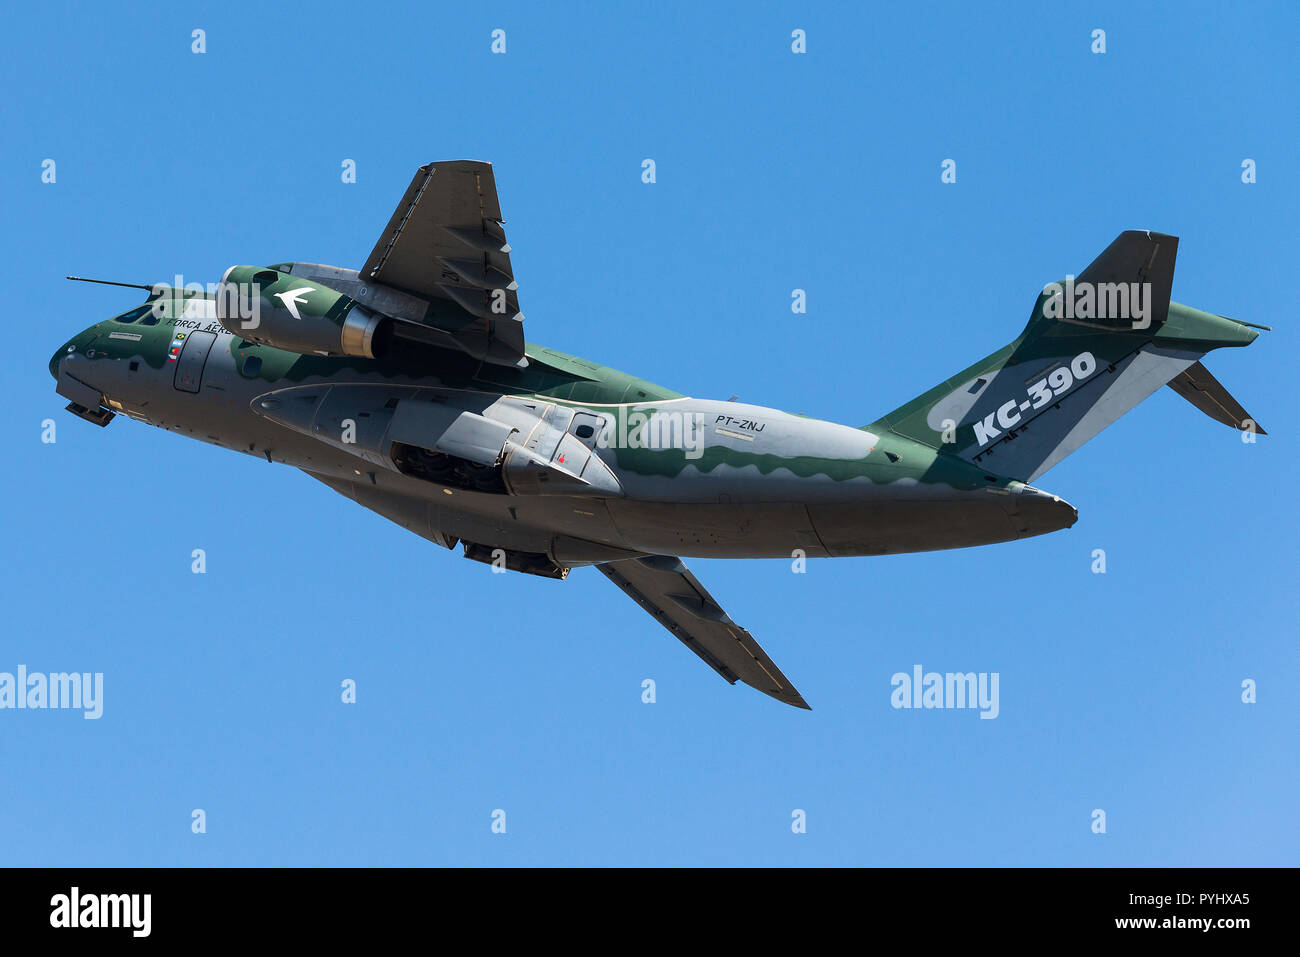 Departure of an Embraer KC-390 military transport aircraft of the Brazilian Air Force. - Stock Image